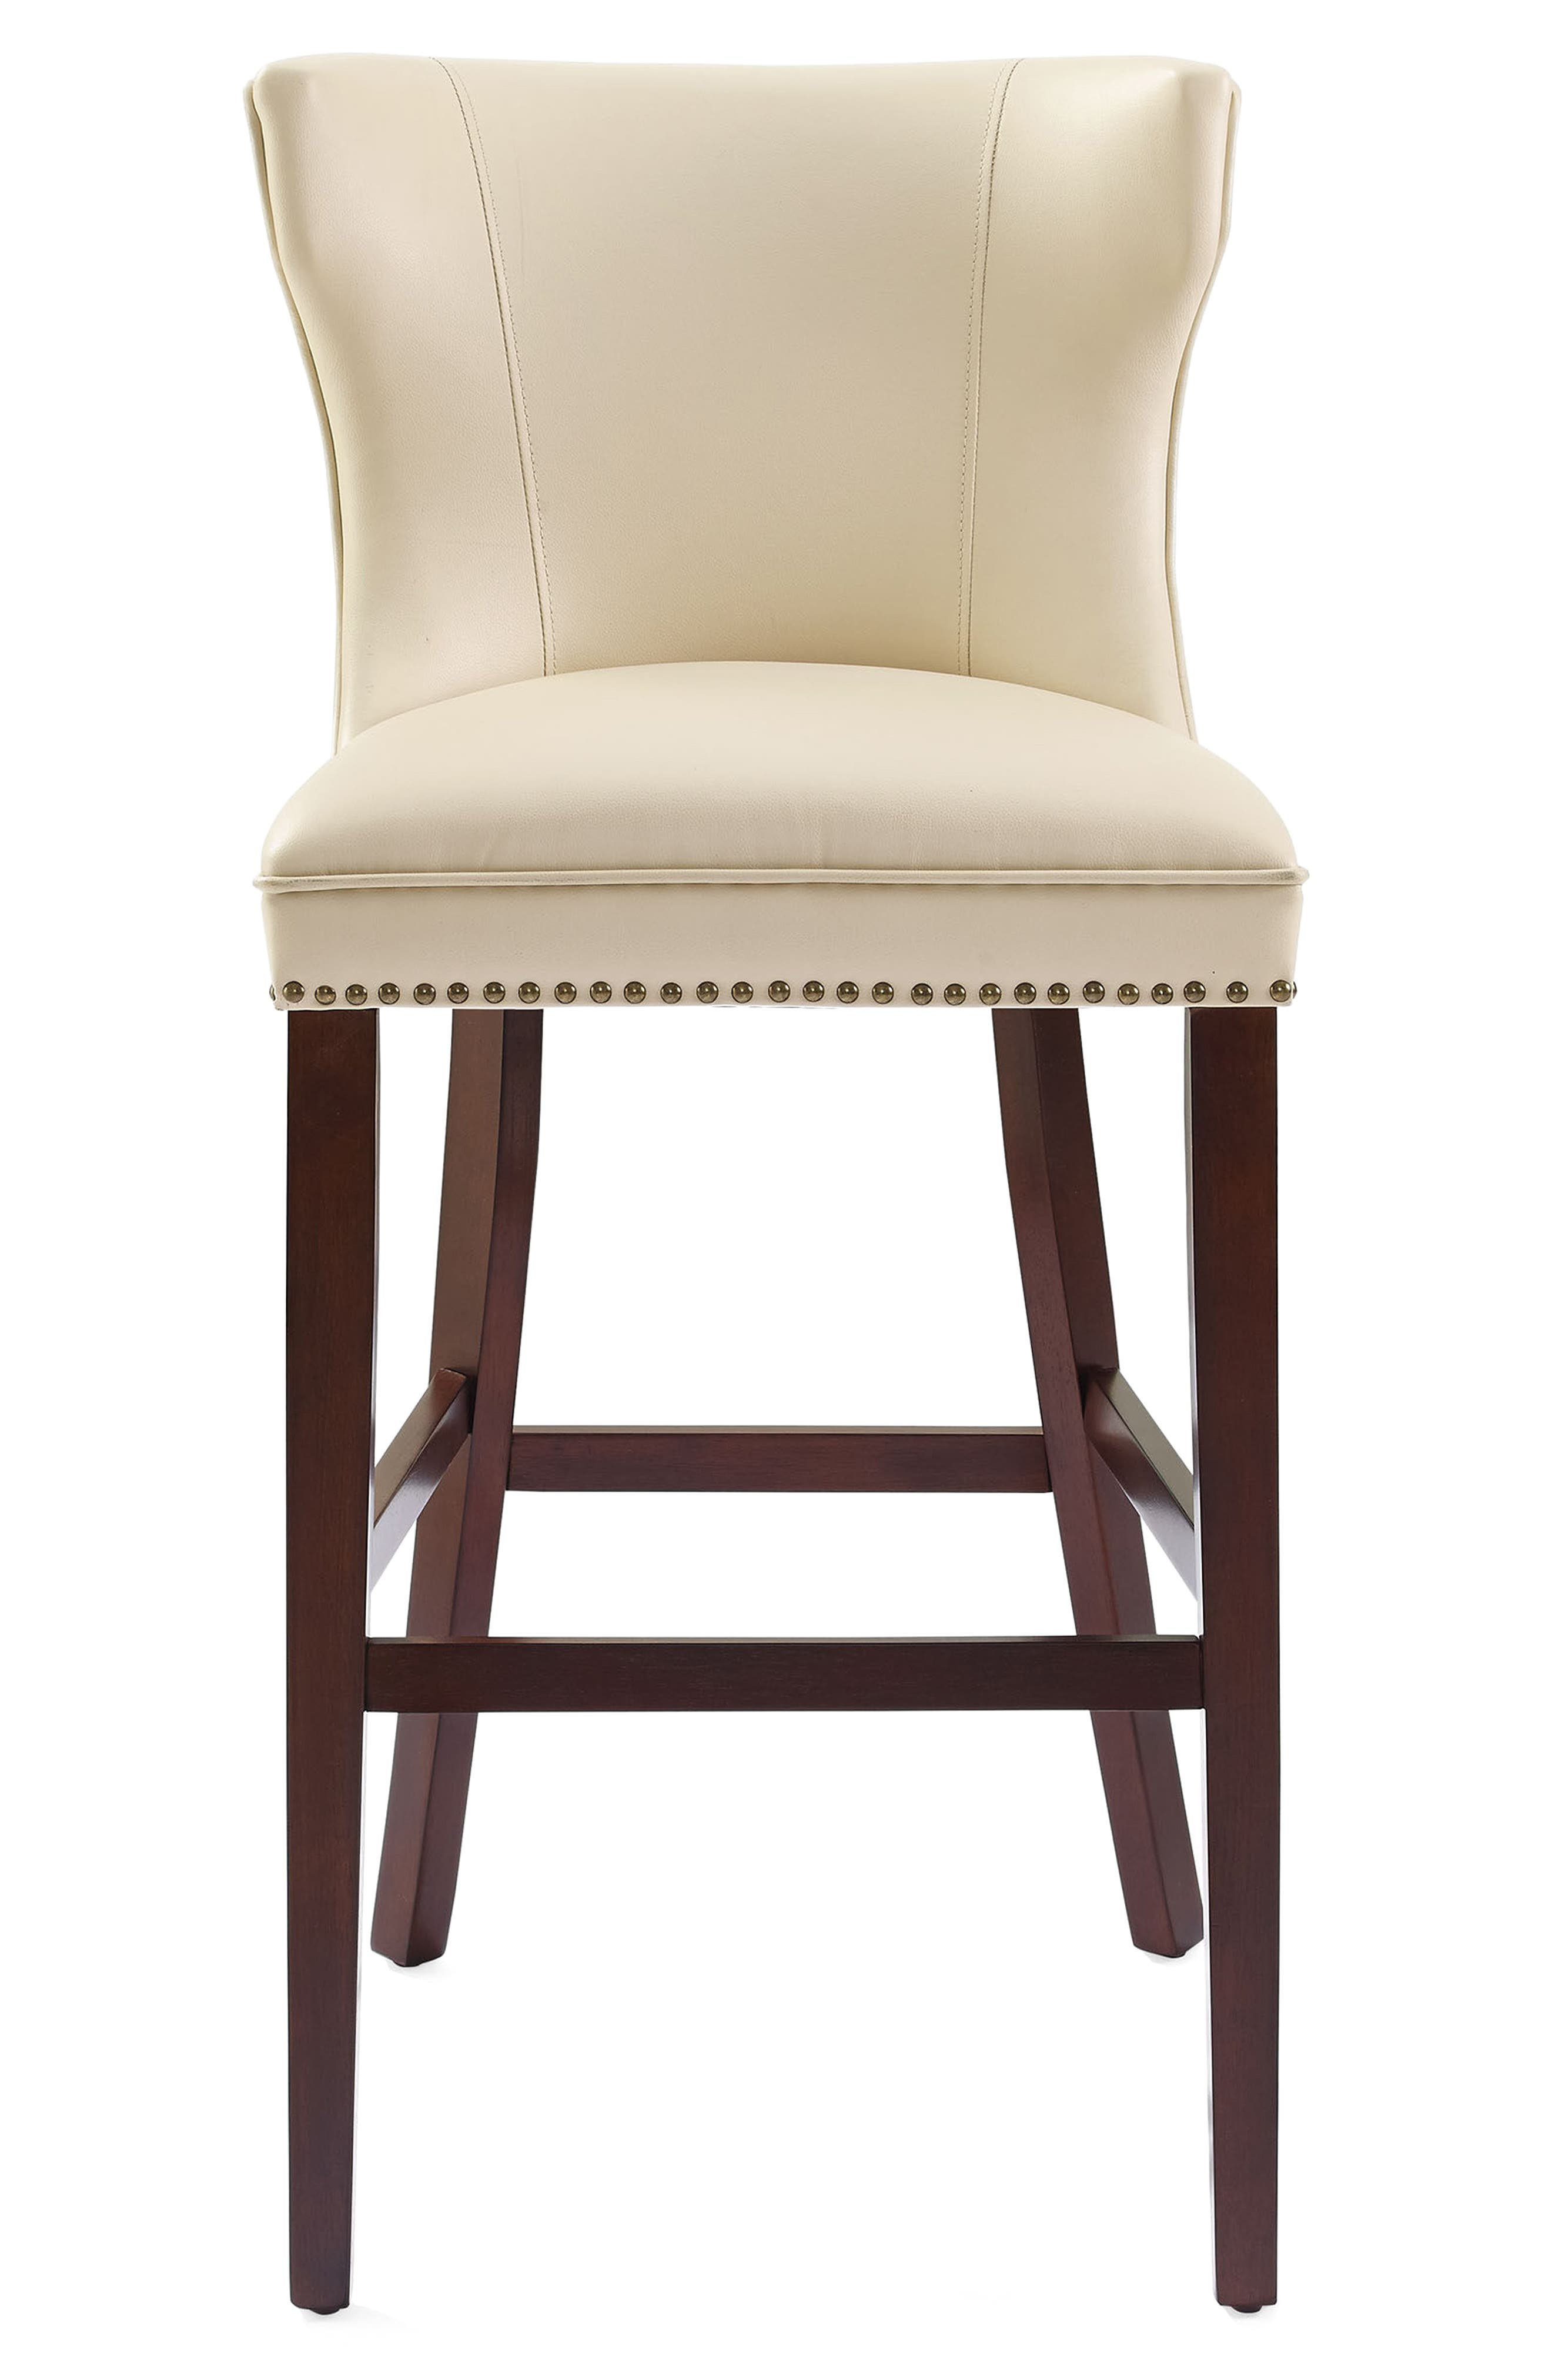 Tilson Bar Stool,                         Main,                         color, Cream